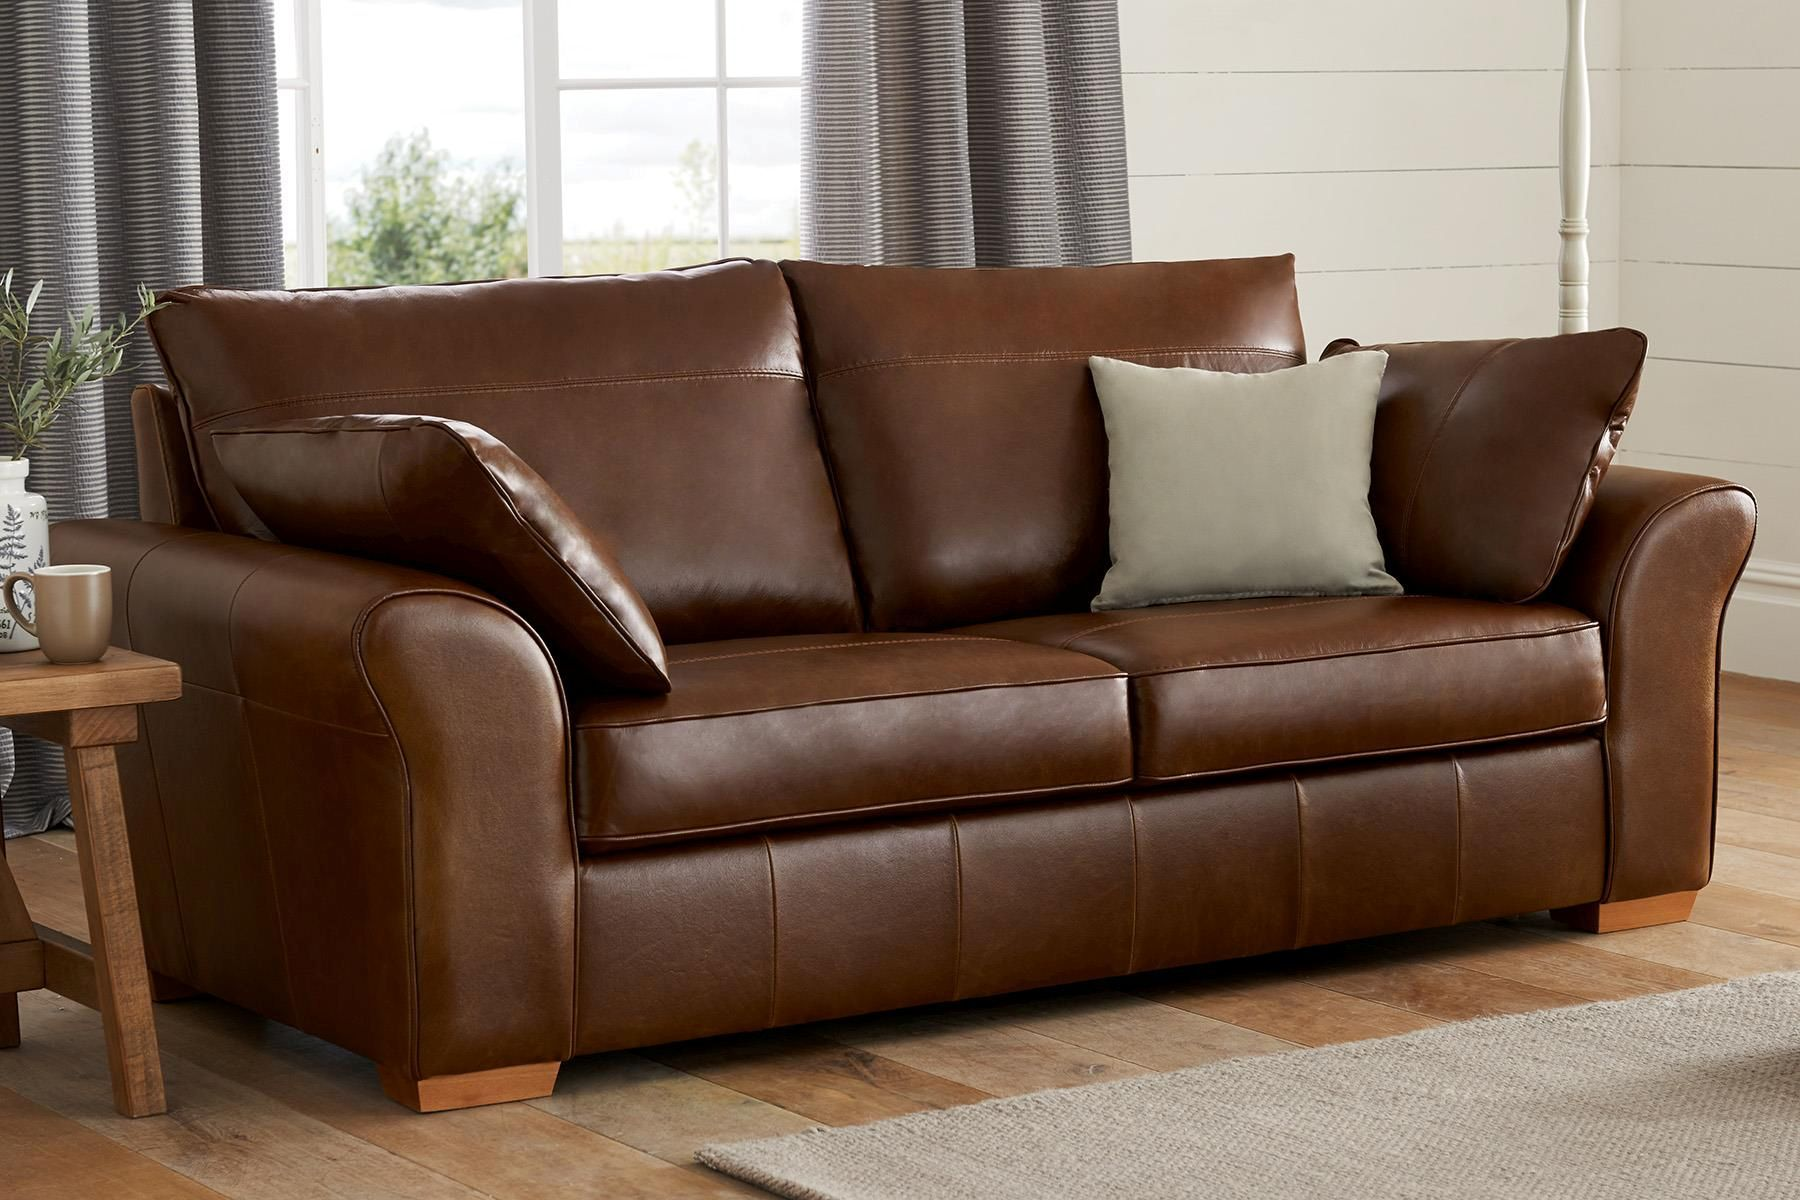 Garda Leather Sofas Armchairs From The Next Uk Online